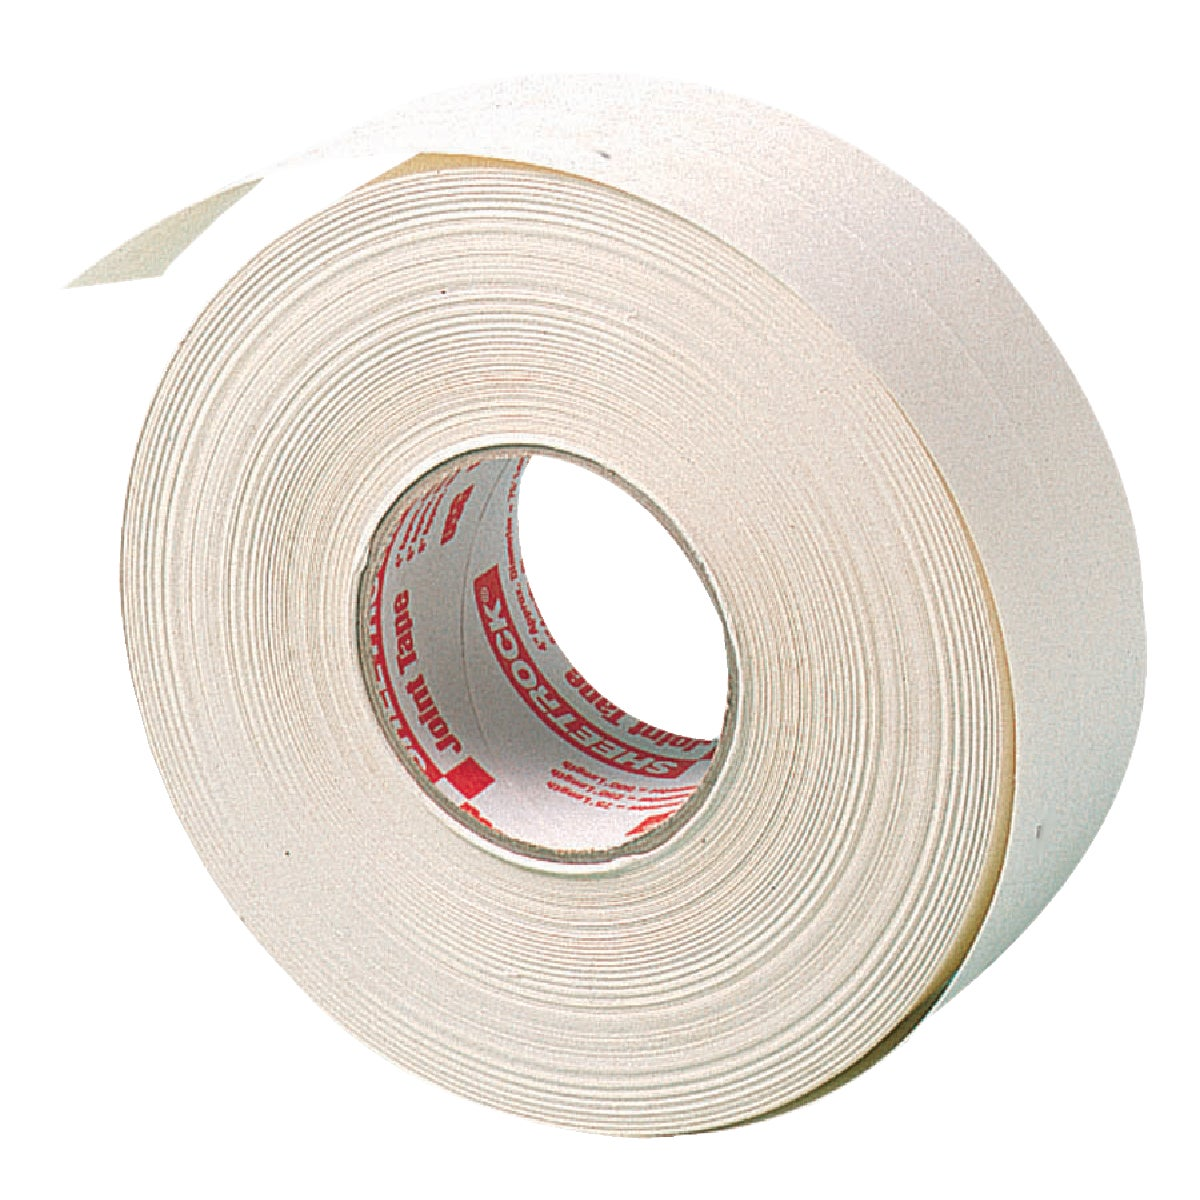 "2-1/16""X250' JOINT TAPE - 382175 by U S Gypsum"